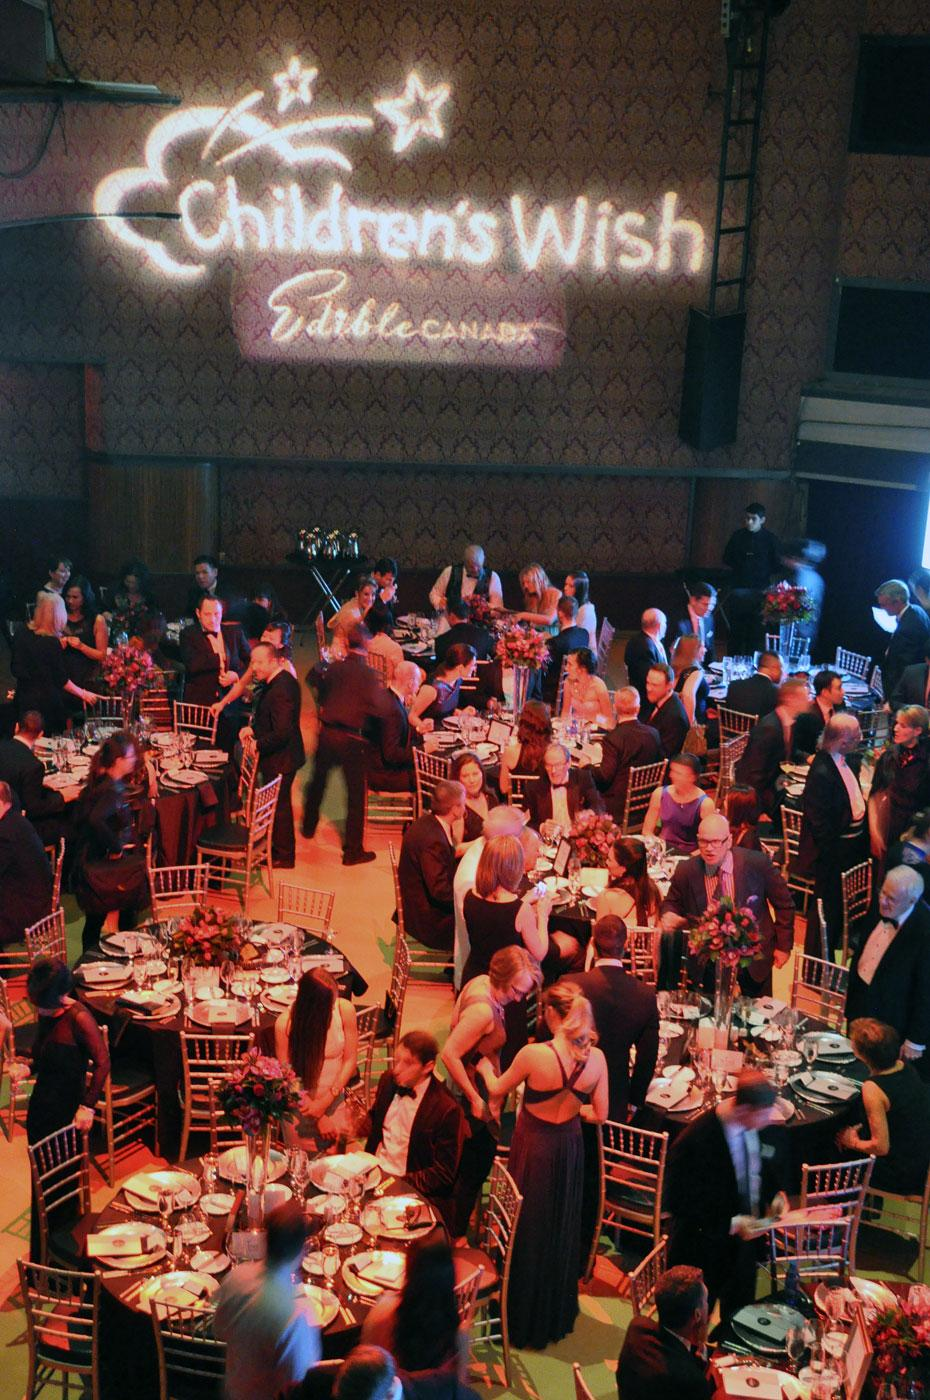 The gala dinner at the Vogue Theatre